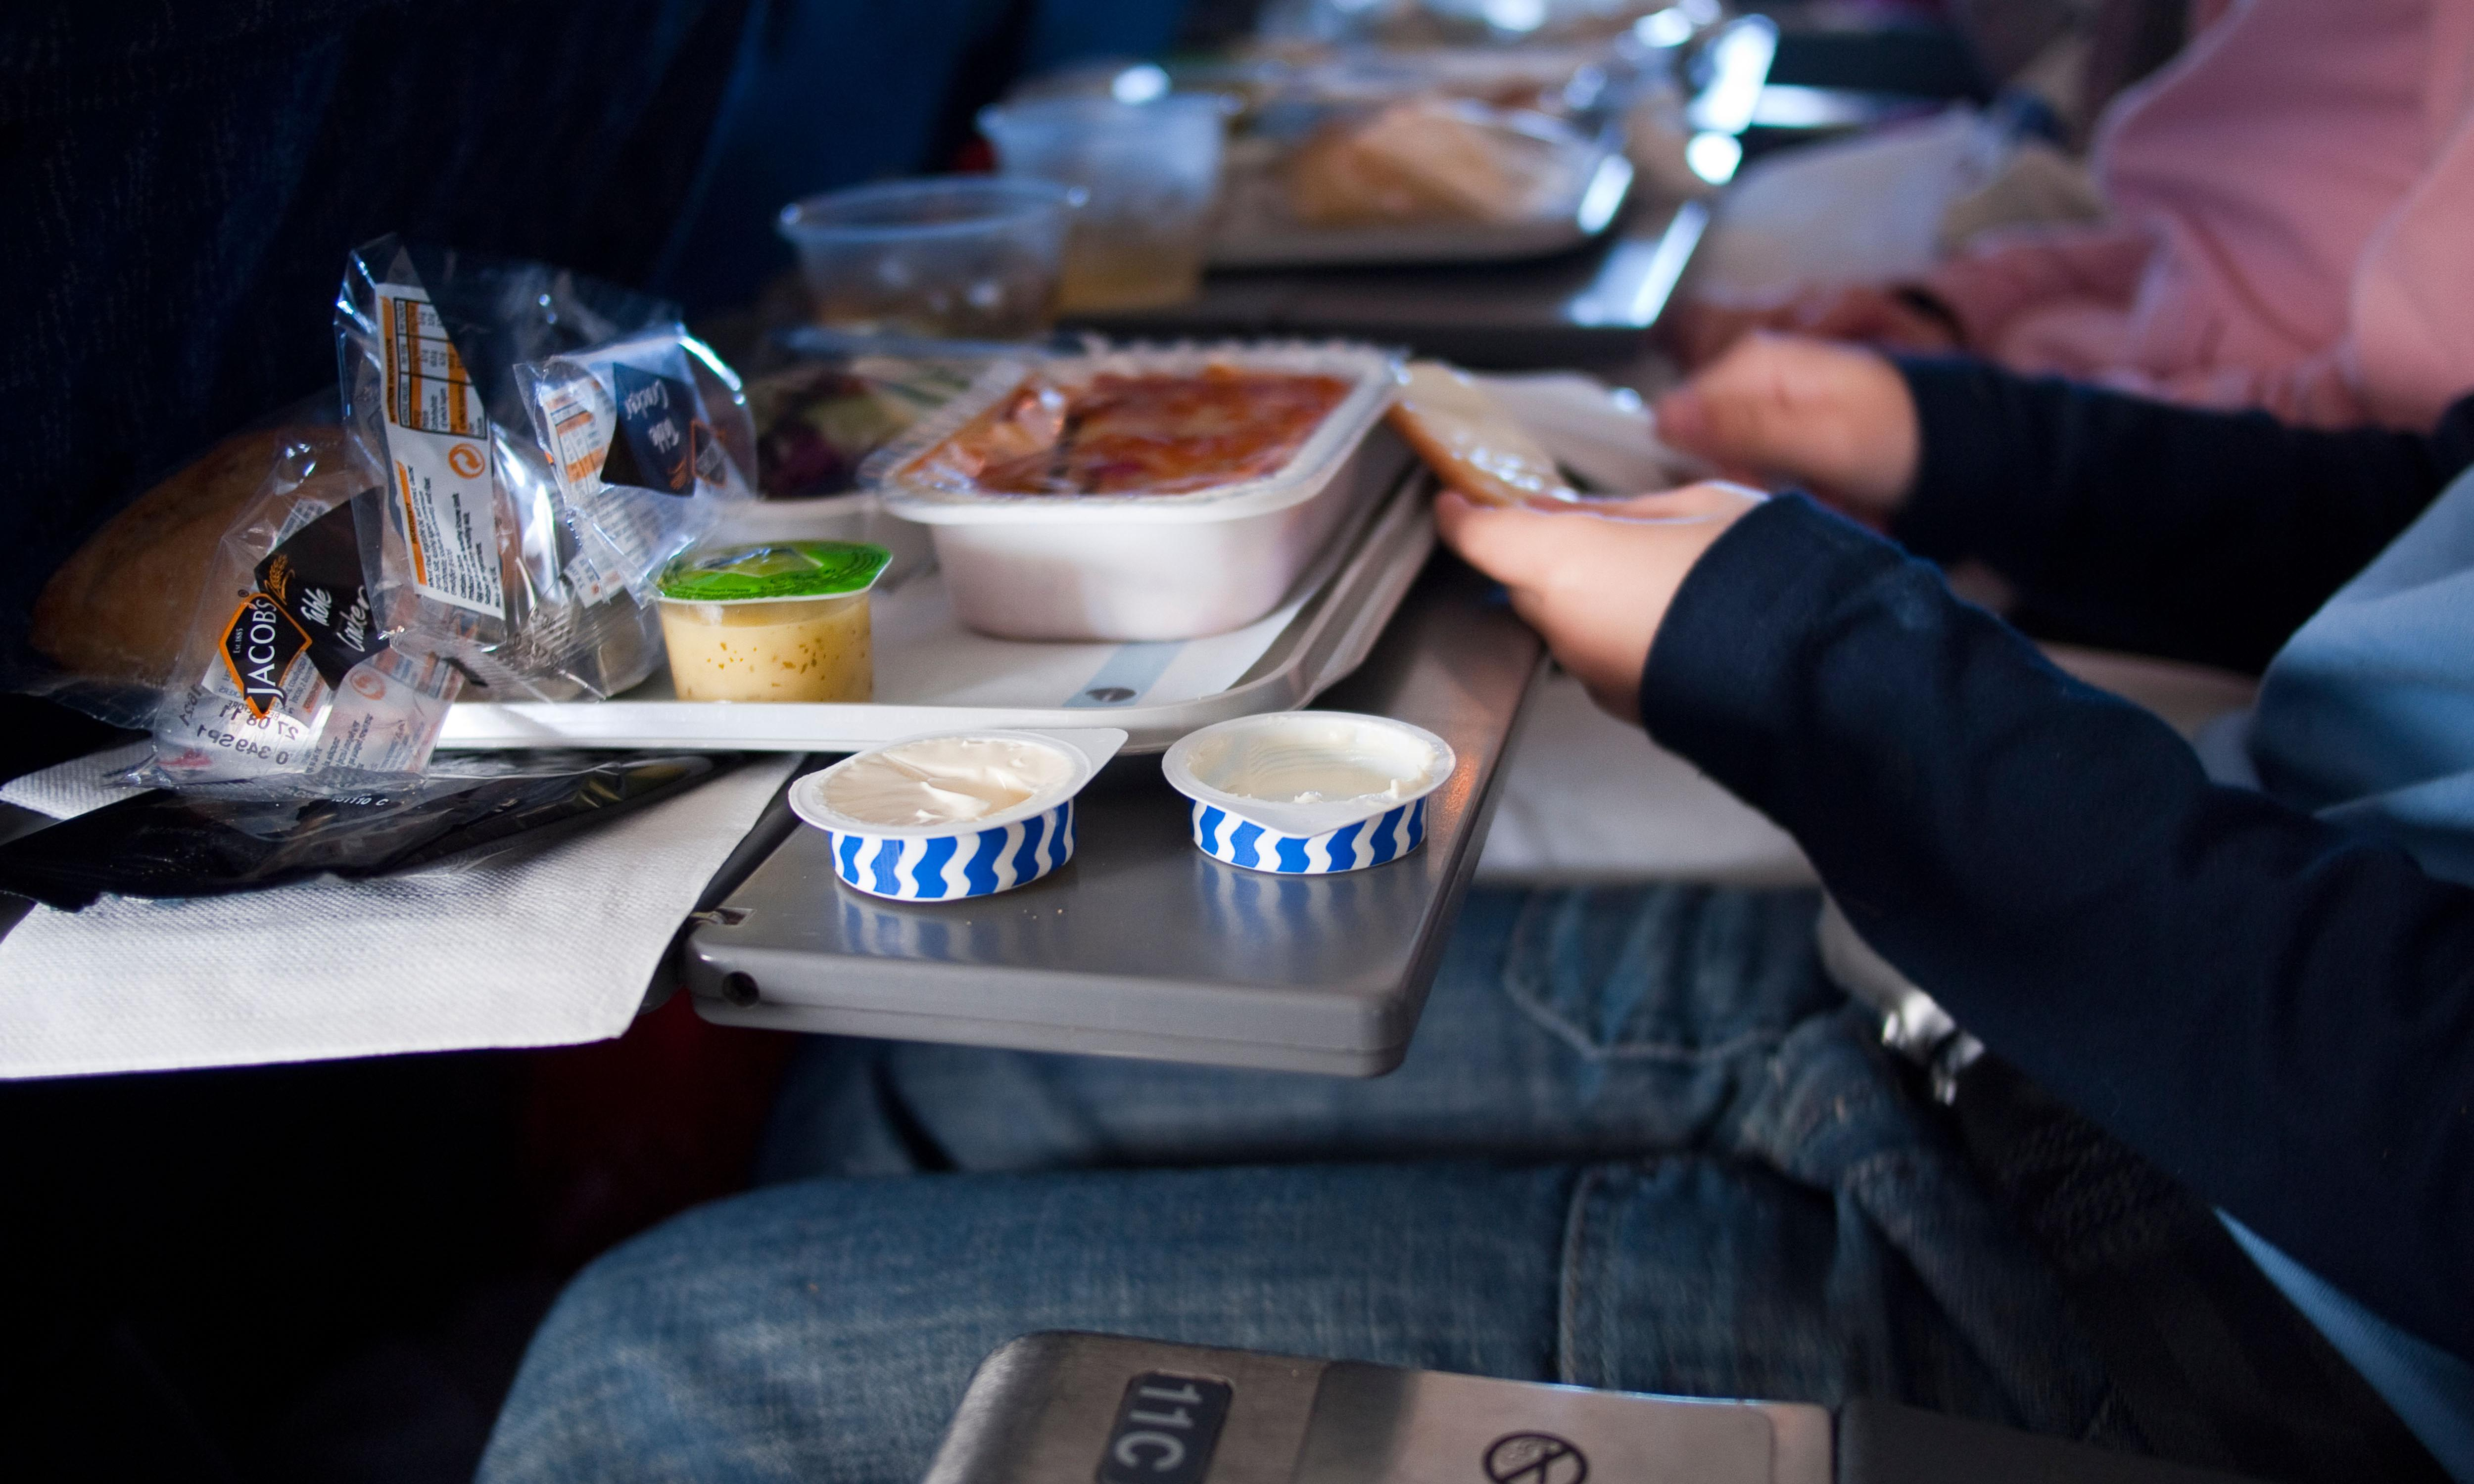 I enjoy airline food, but in a restaurant? Pass the sickbag